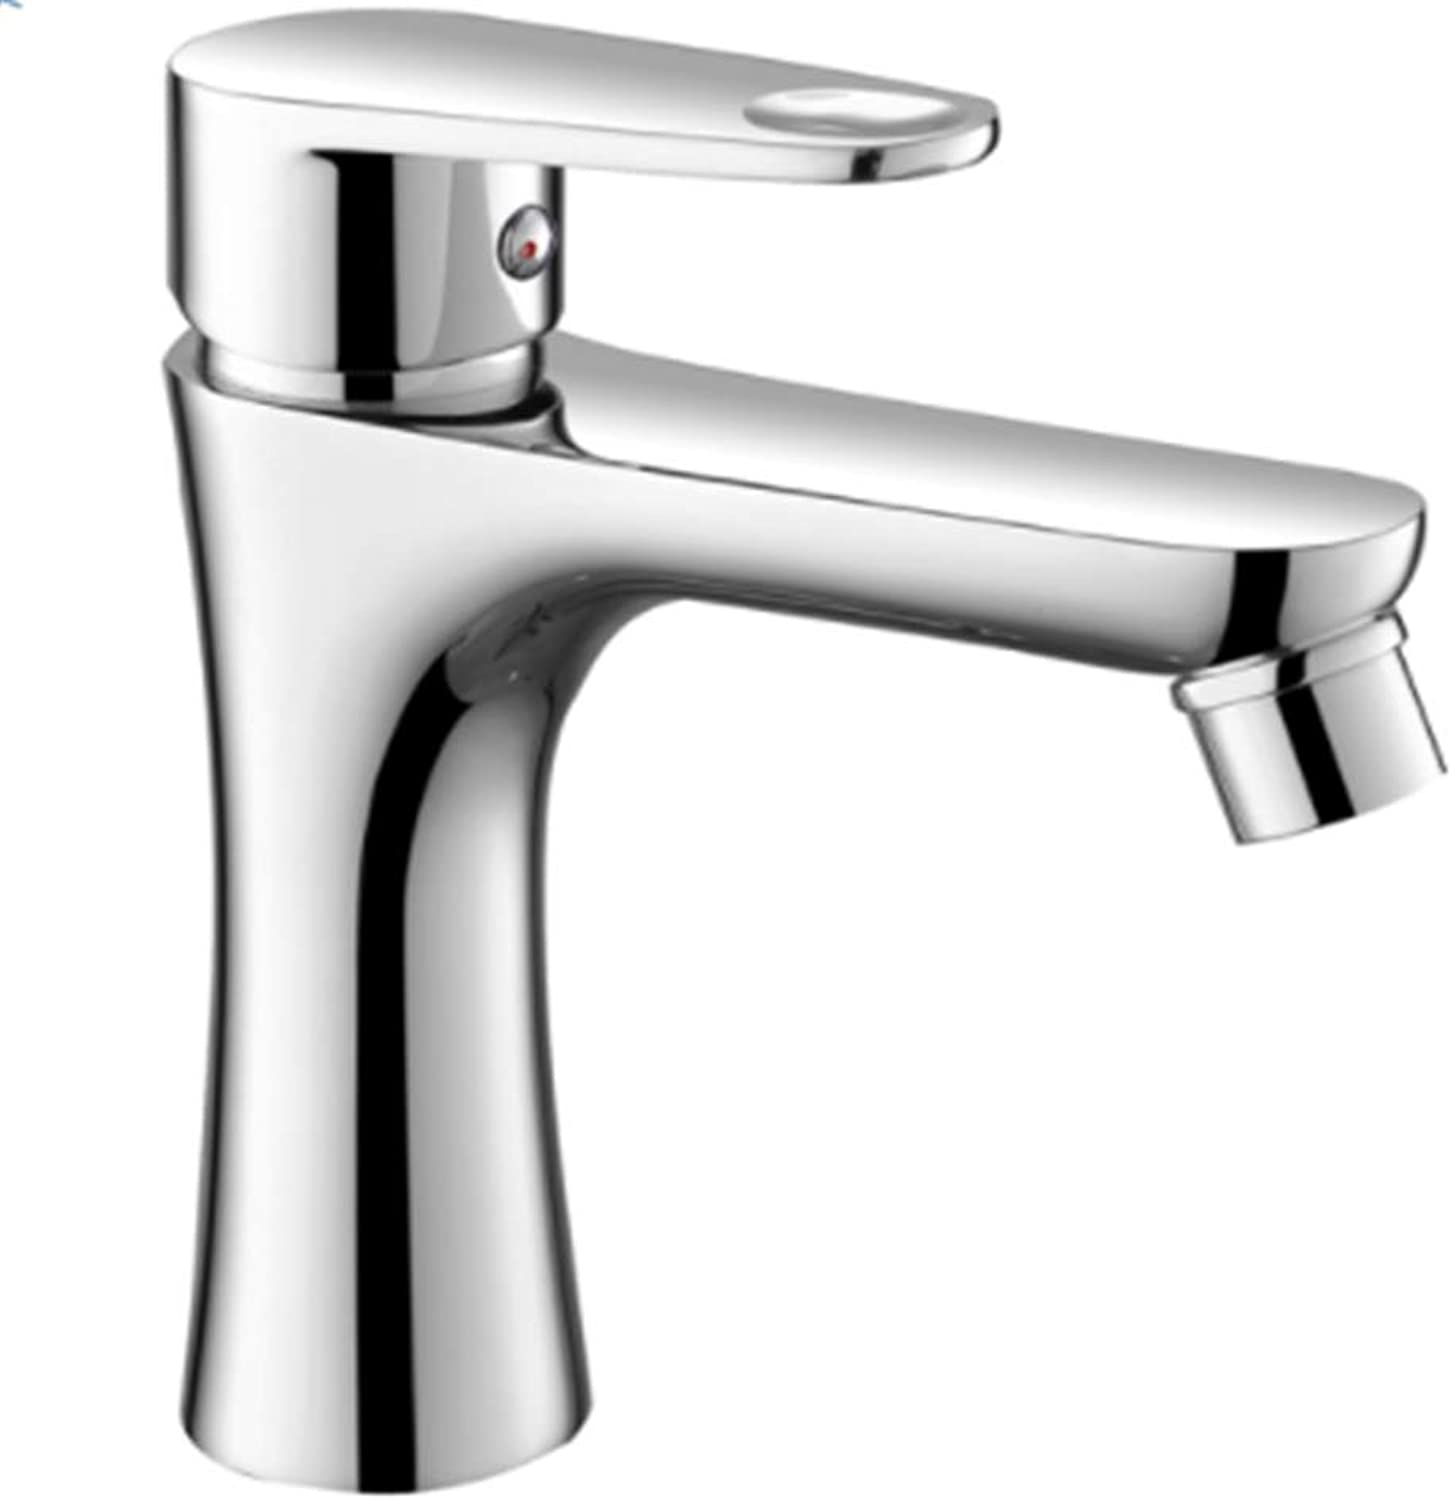 Kitchen Faucet Tapstainless Steelkitchen Faucet Proall Copper Faucet Faucet Hot and Cold Water Basin Faucet